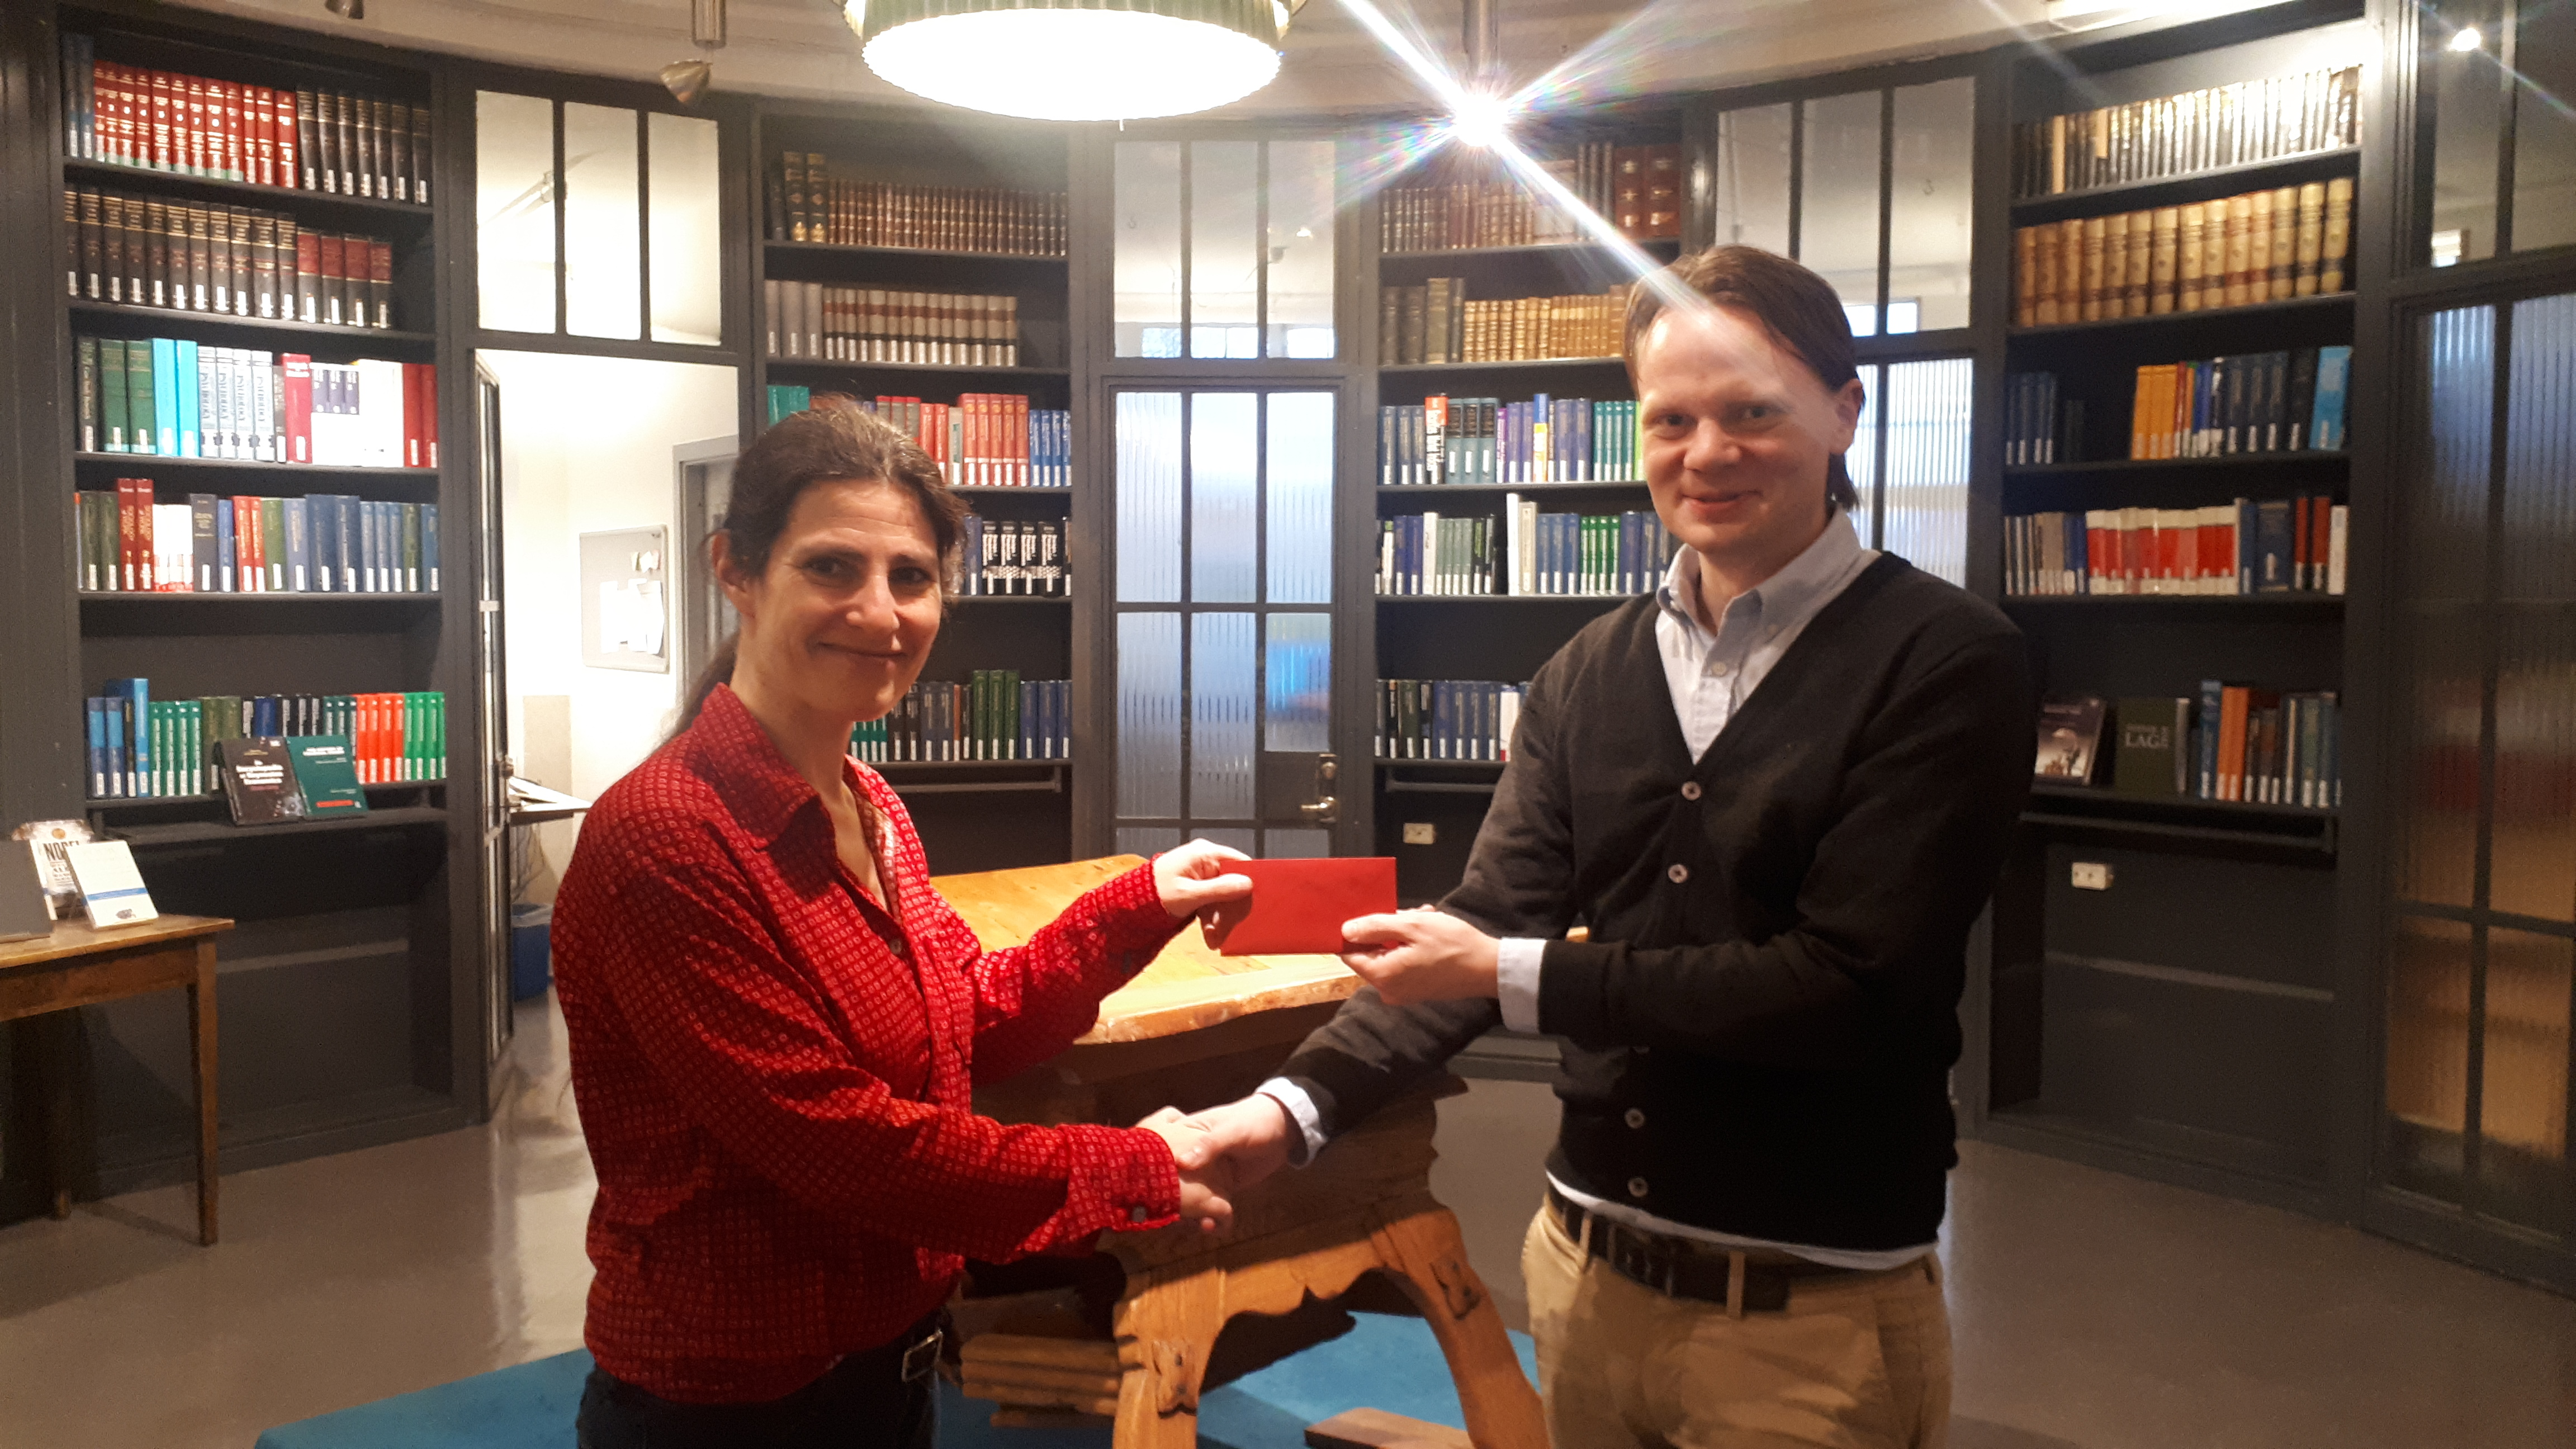 Gabriel is handed the prize by Library Manager Miriam Nauri